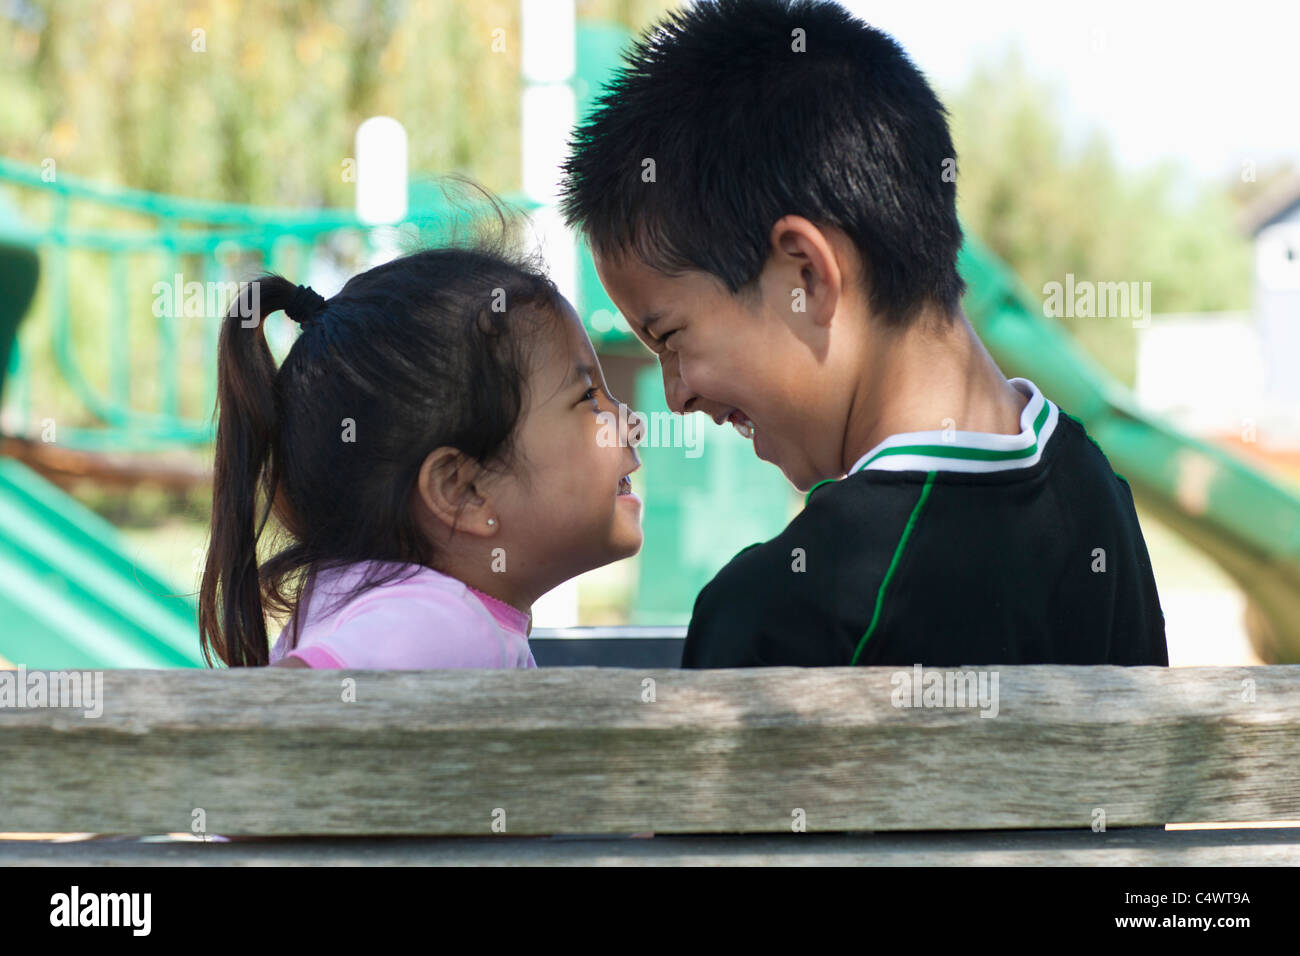 USA, California, Brother and sister (4-13) face to face at playground - Stock Image